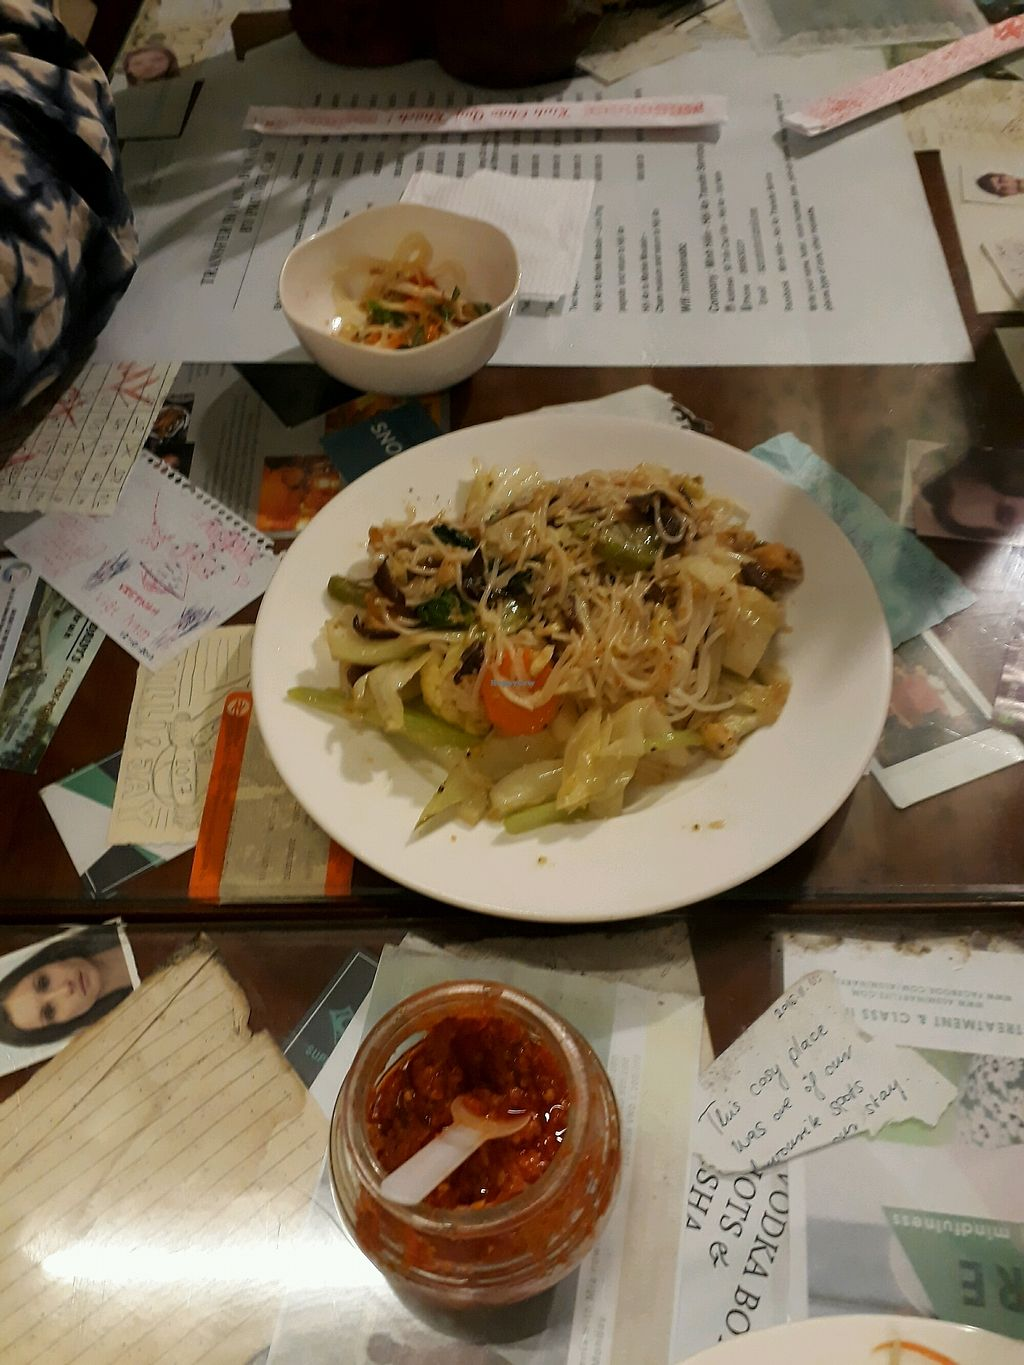 """Photo of Minh Hien Quan Chay  by <a href=""""/members/profile/SaffireBlack"""">SaffireBlack</a> <br/>Sauteed noodle with veg and mushroom. Delicious chilli sauce as well <br/> November 26, 2017  - <a href='/contact/abuse/image/30597/329405'>Report</a>"""